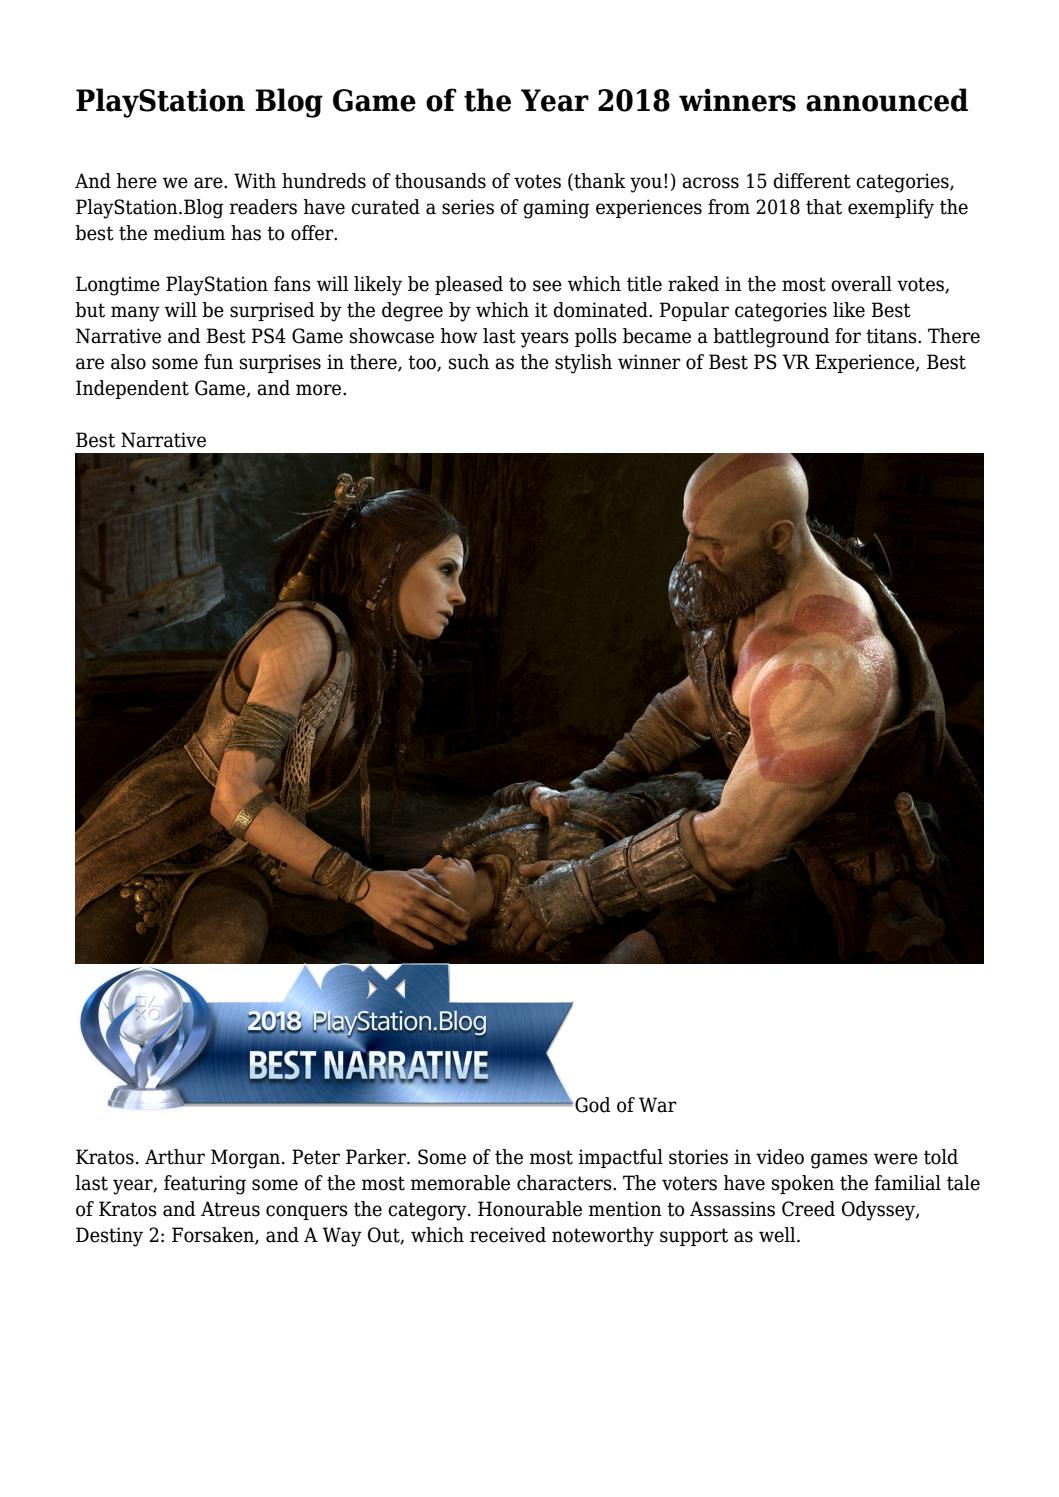 PlayStation Blog Game of the Year 2018 winners announced by